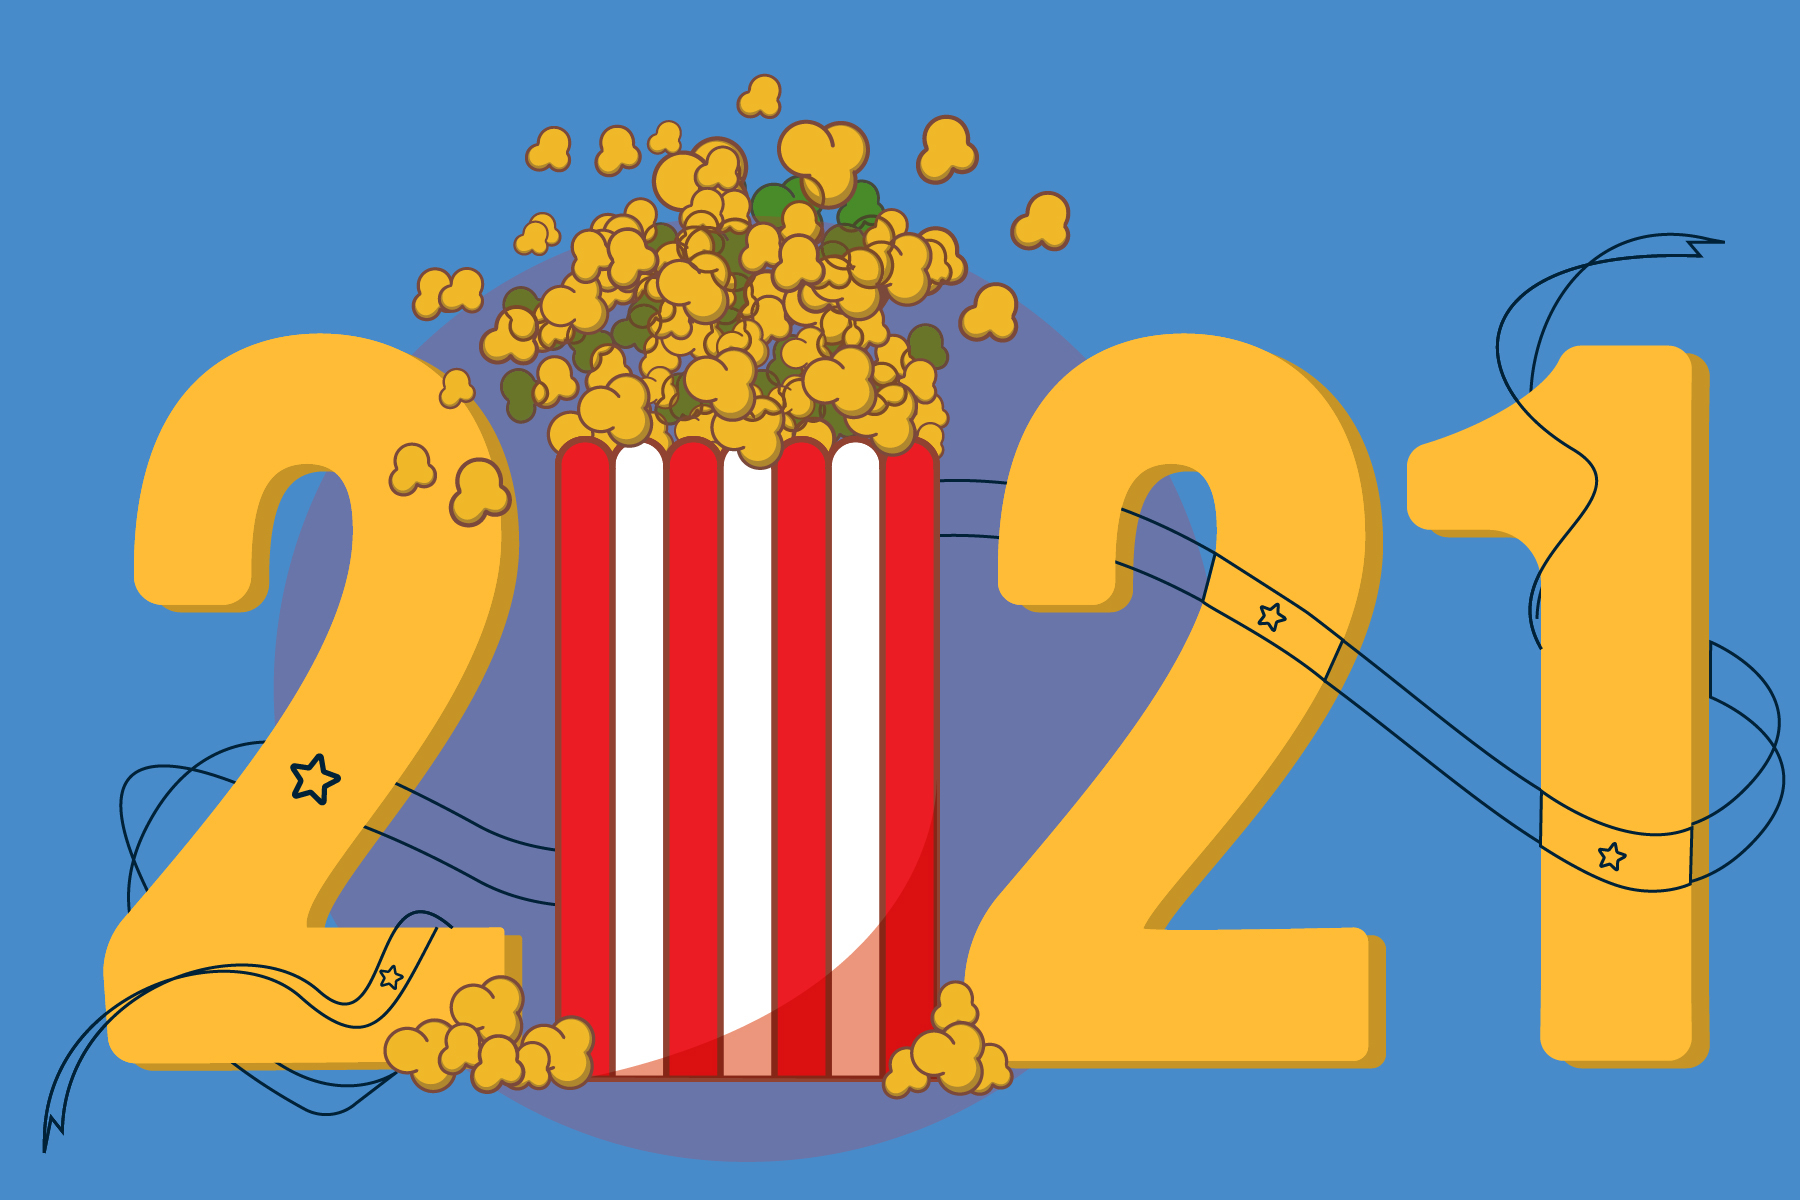 graphic of the year 2021 with a popcorn bucket replacing the O, in a story about family movies